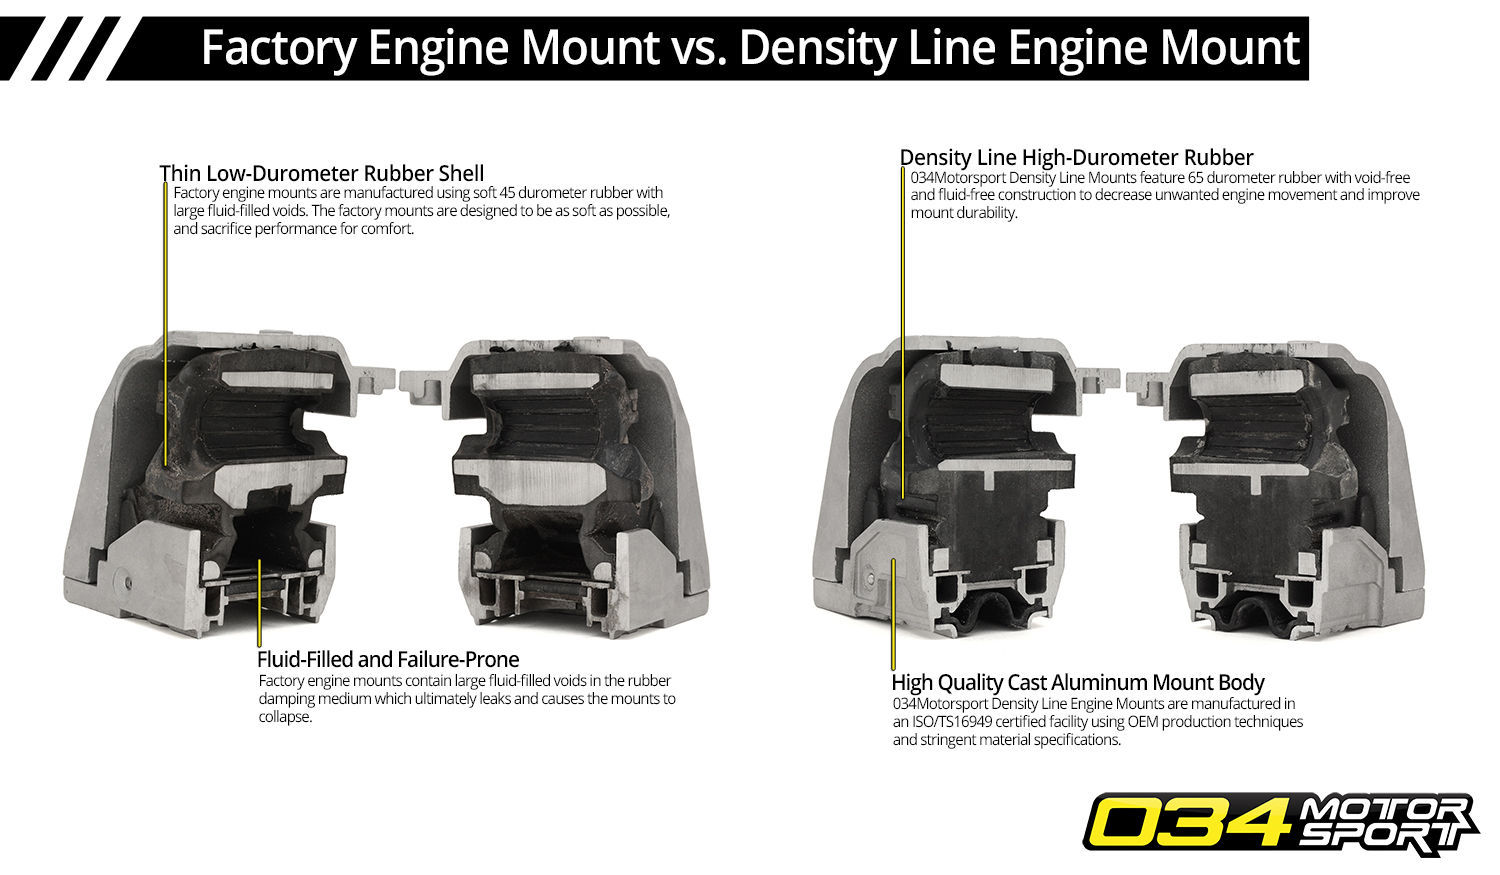 034Motorsport Density Line Mounts for B6 Volkswagen Passat 2.0T Tiptronic vs. Factory Mounts